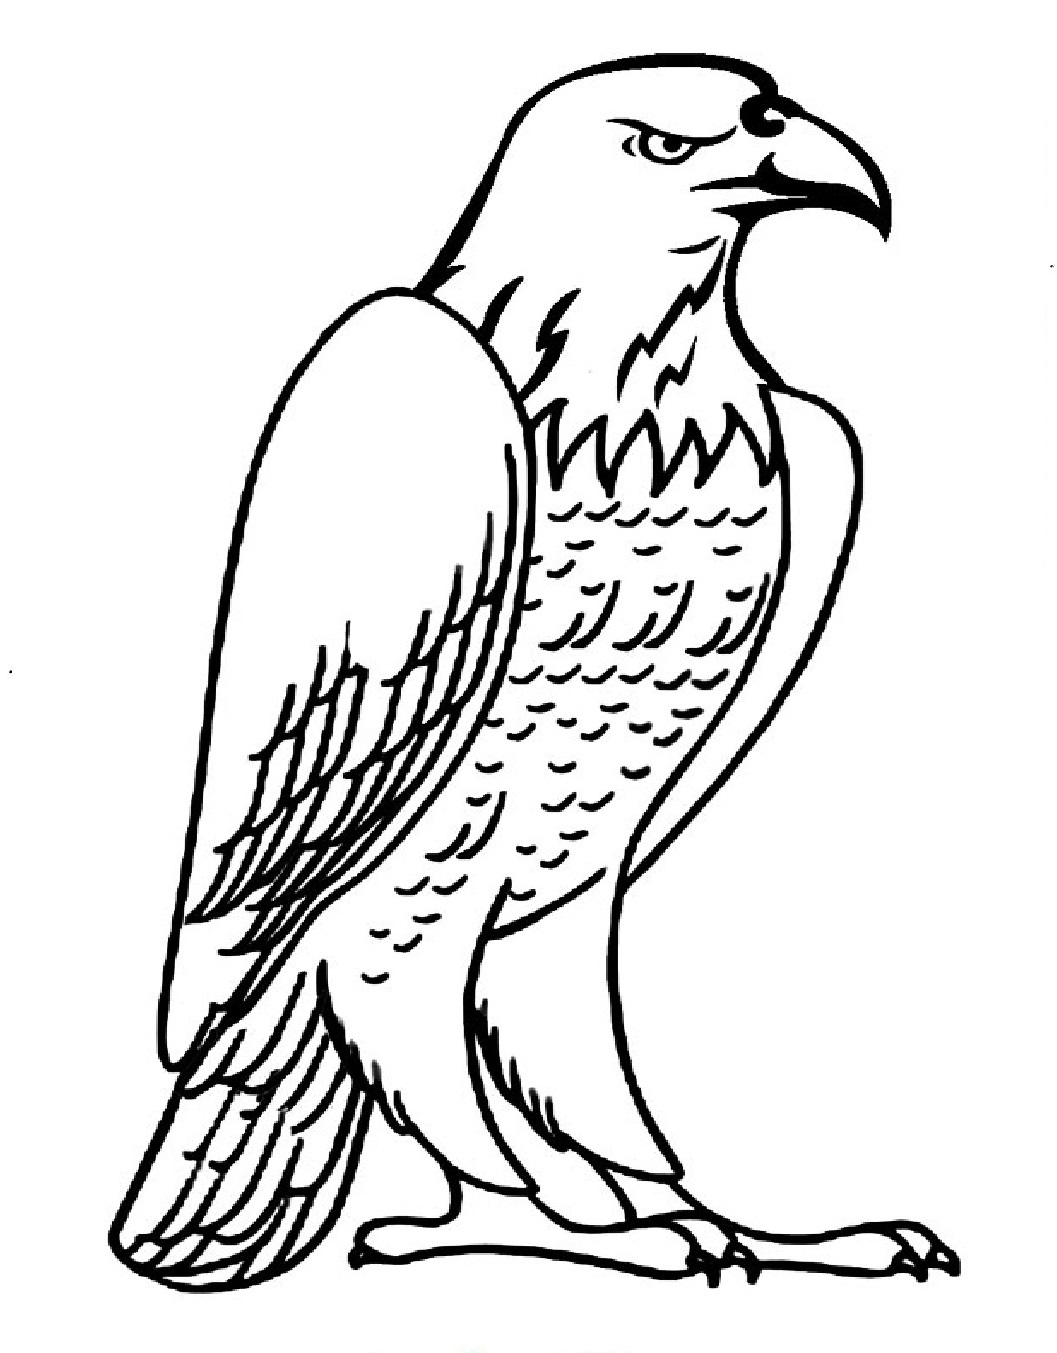 eagle coloring images free eagle coloring pages images eagle coloring